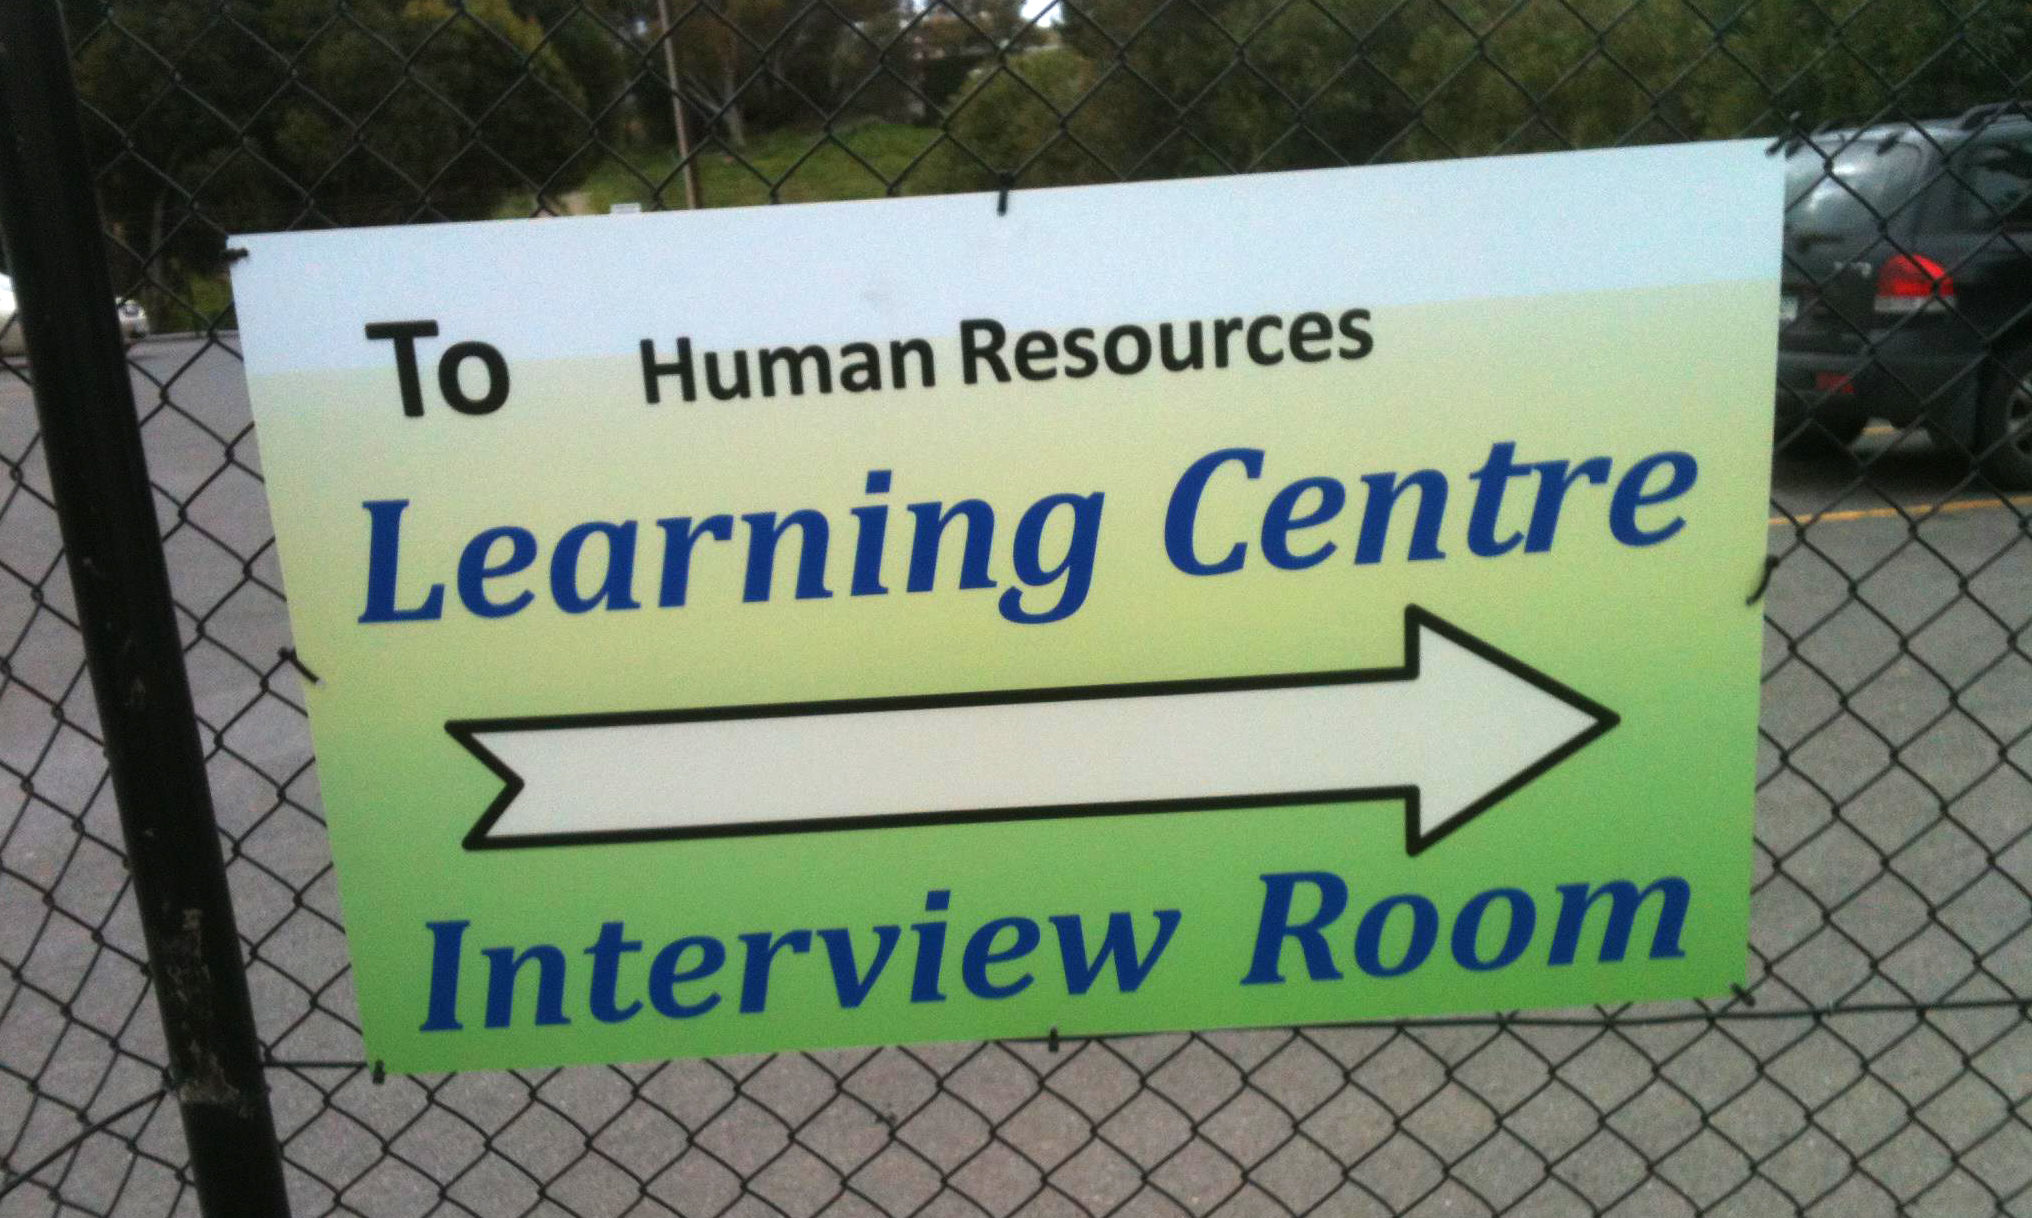 Thomas Foods - Learning Centre Corflute Sign